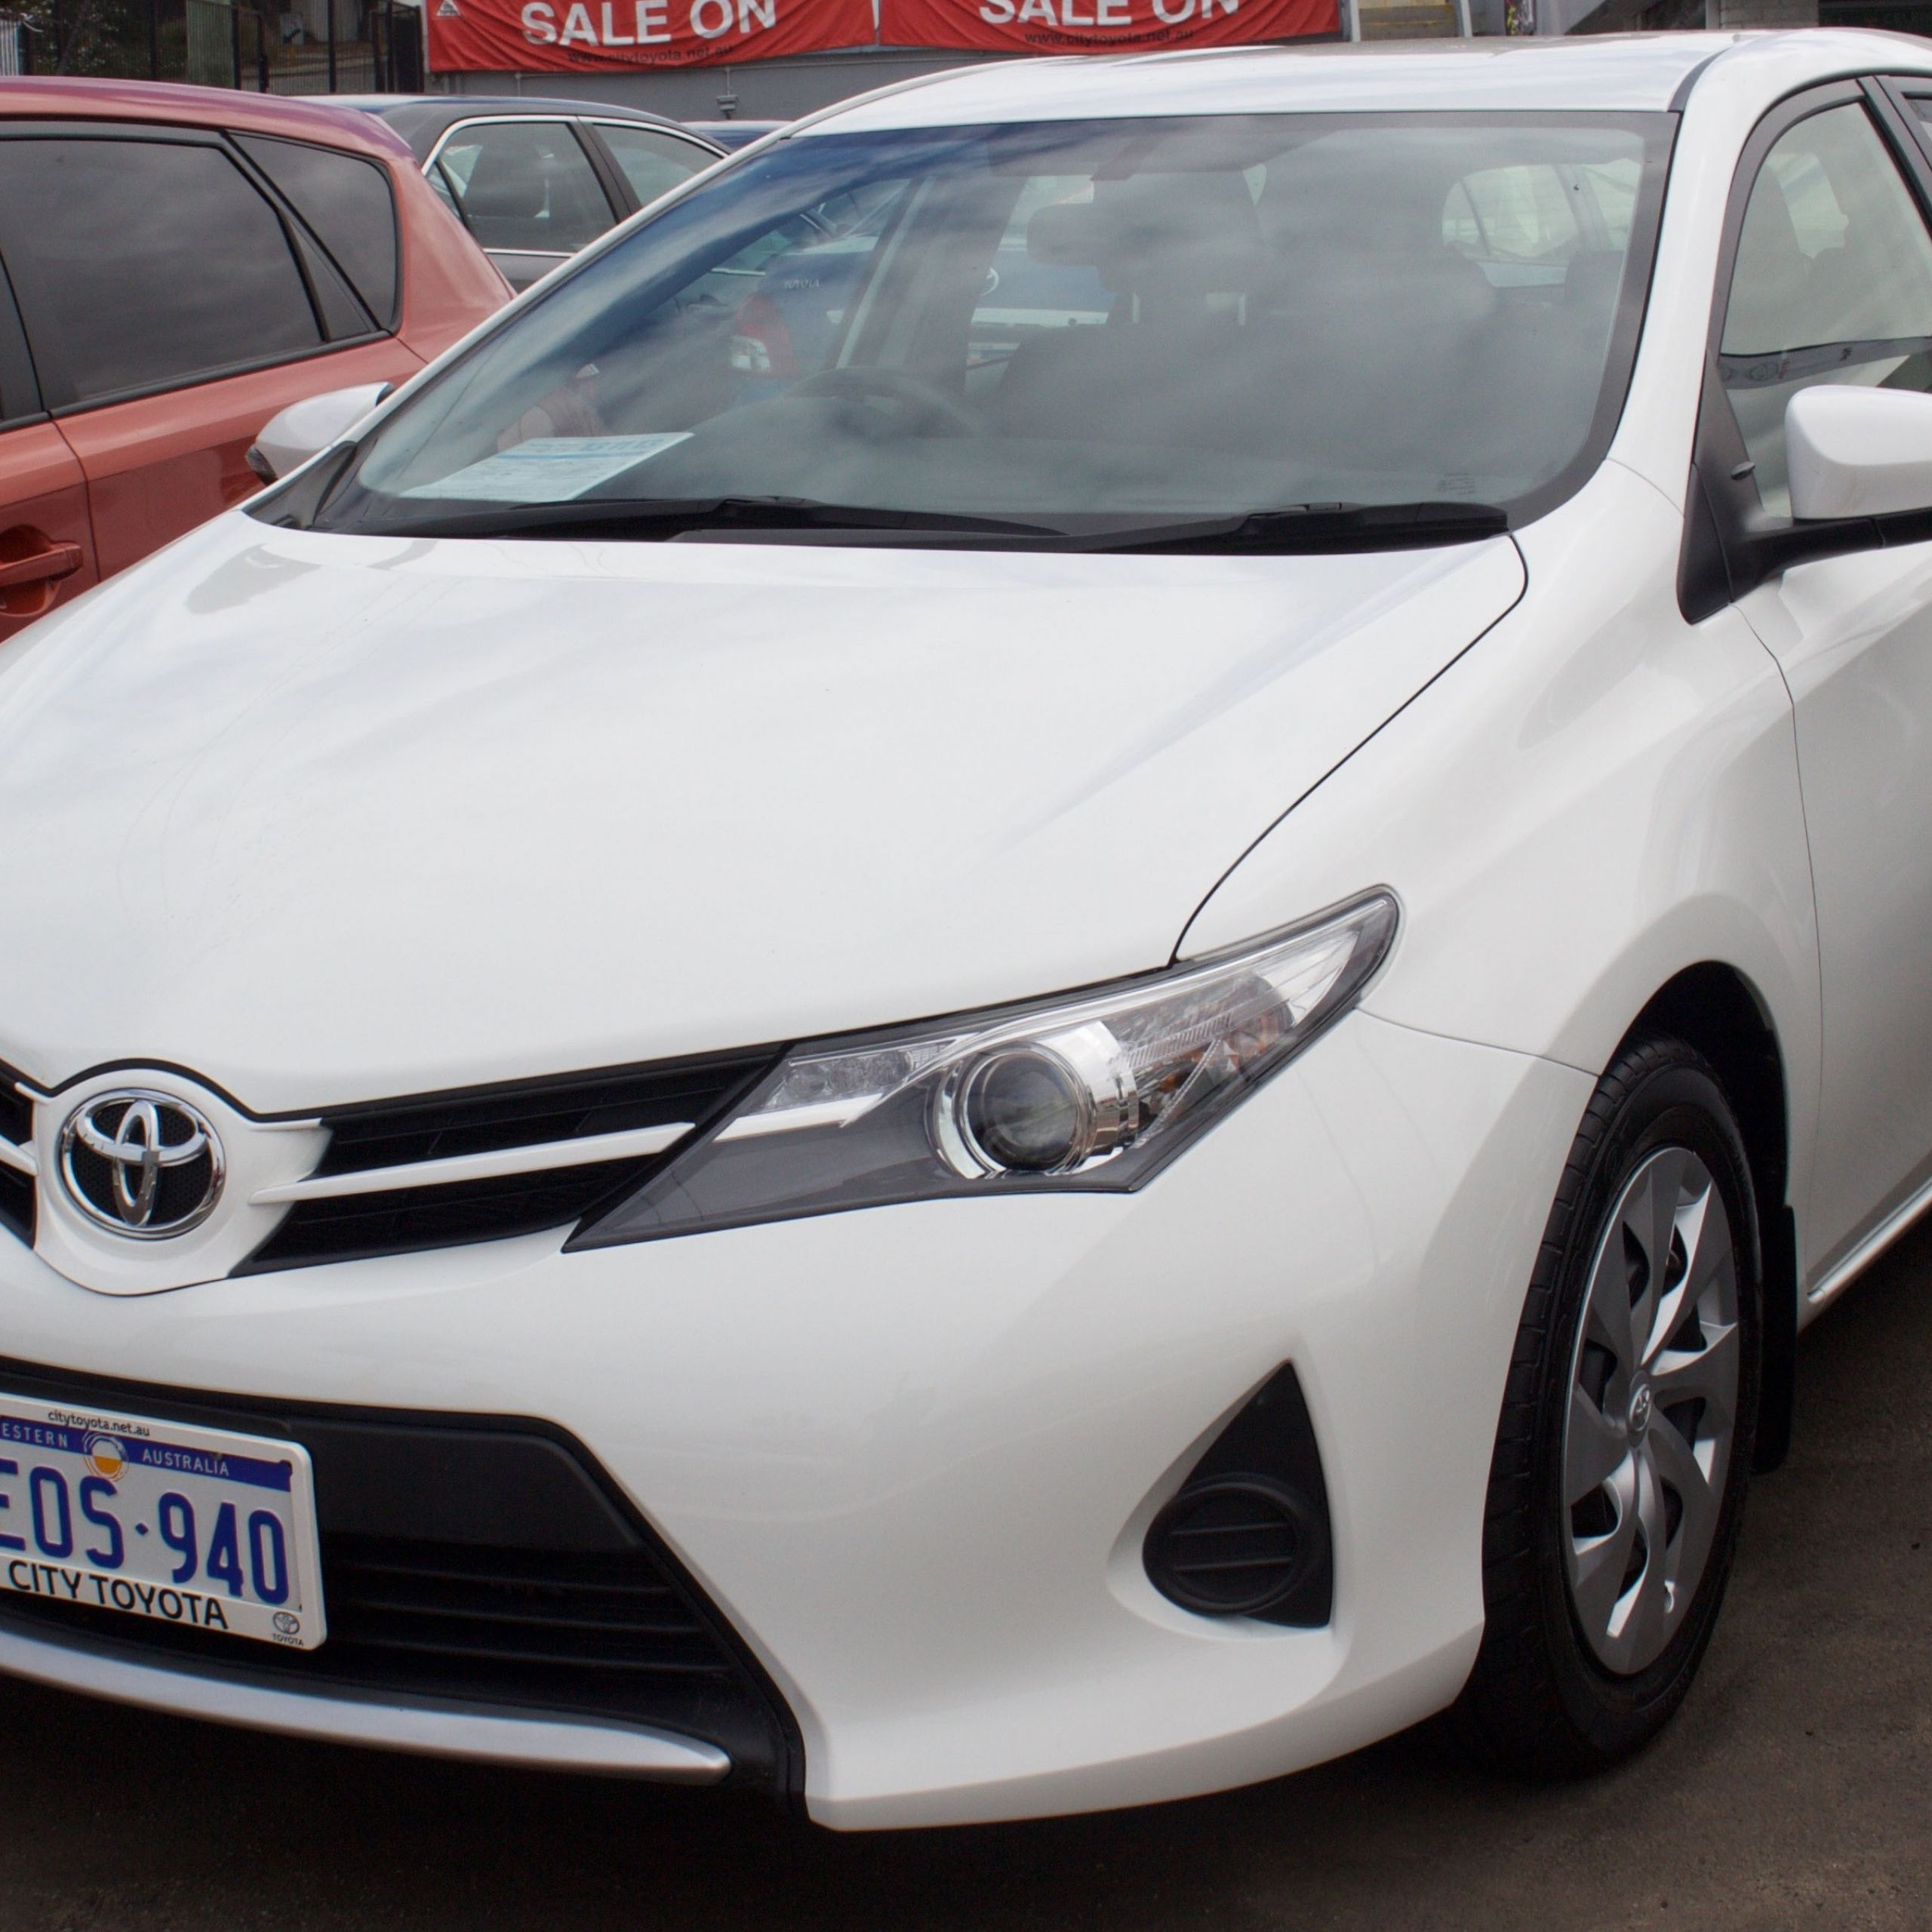 2014 Toyota Corolla ZRE182R Ascent hatchback % 10 18